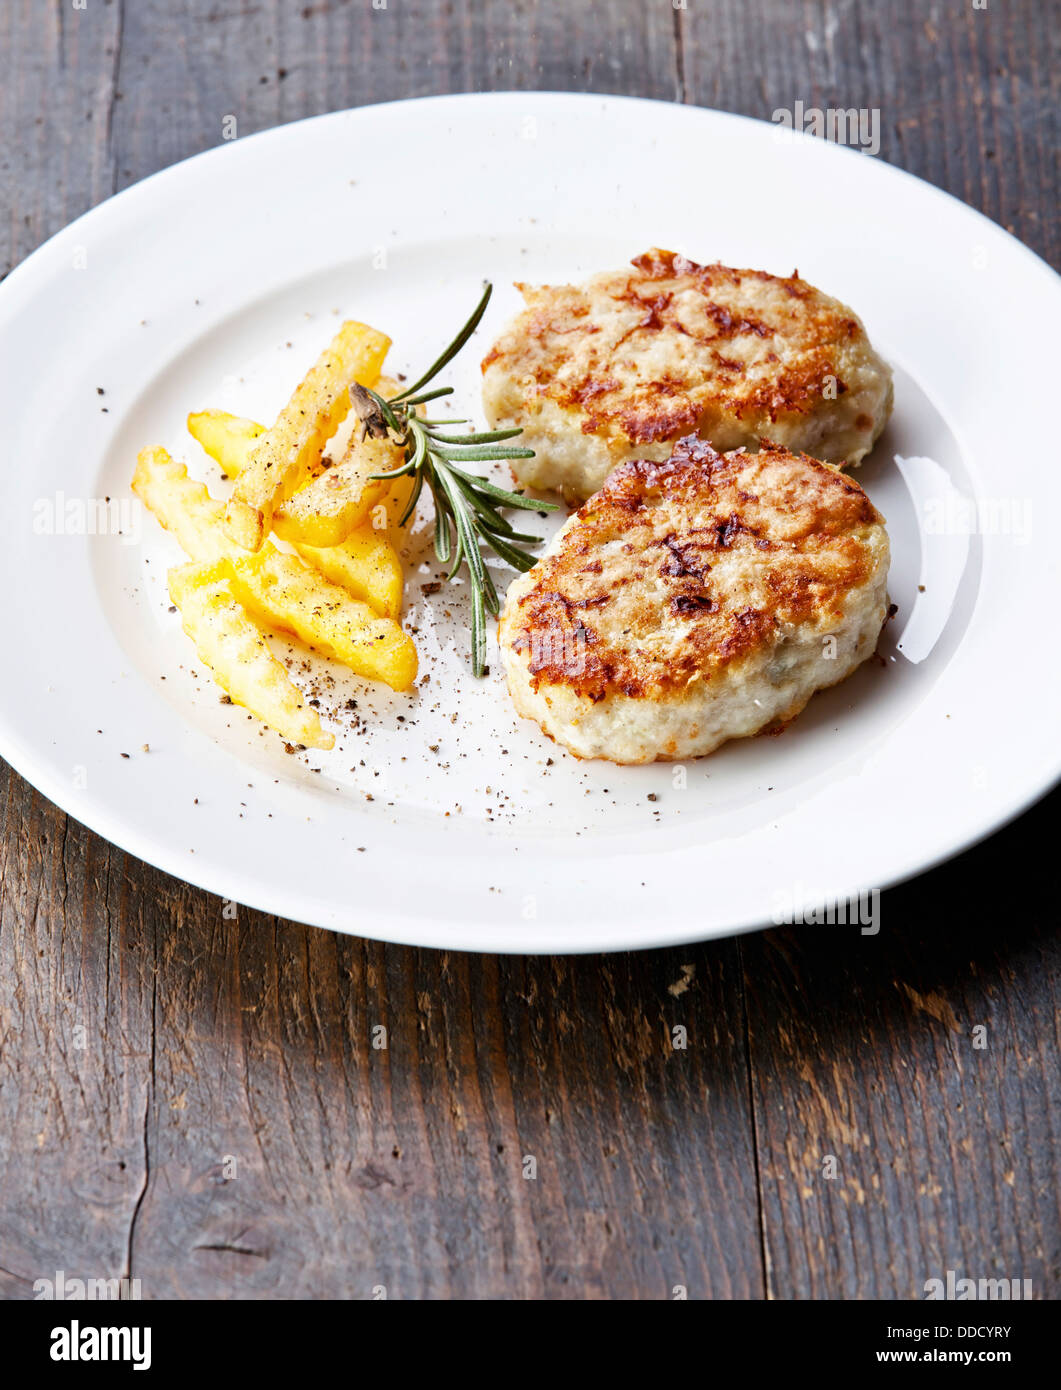 Fishcakes with french fries and herbs - Stock Image